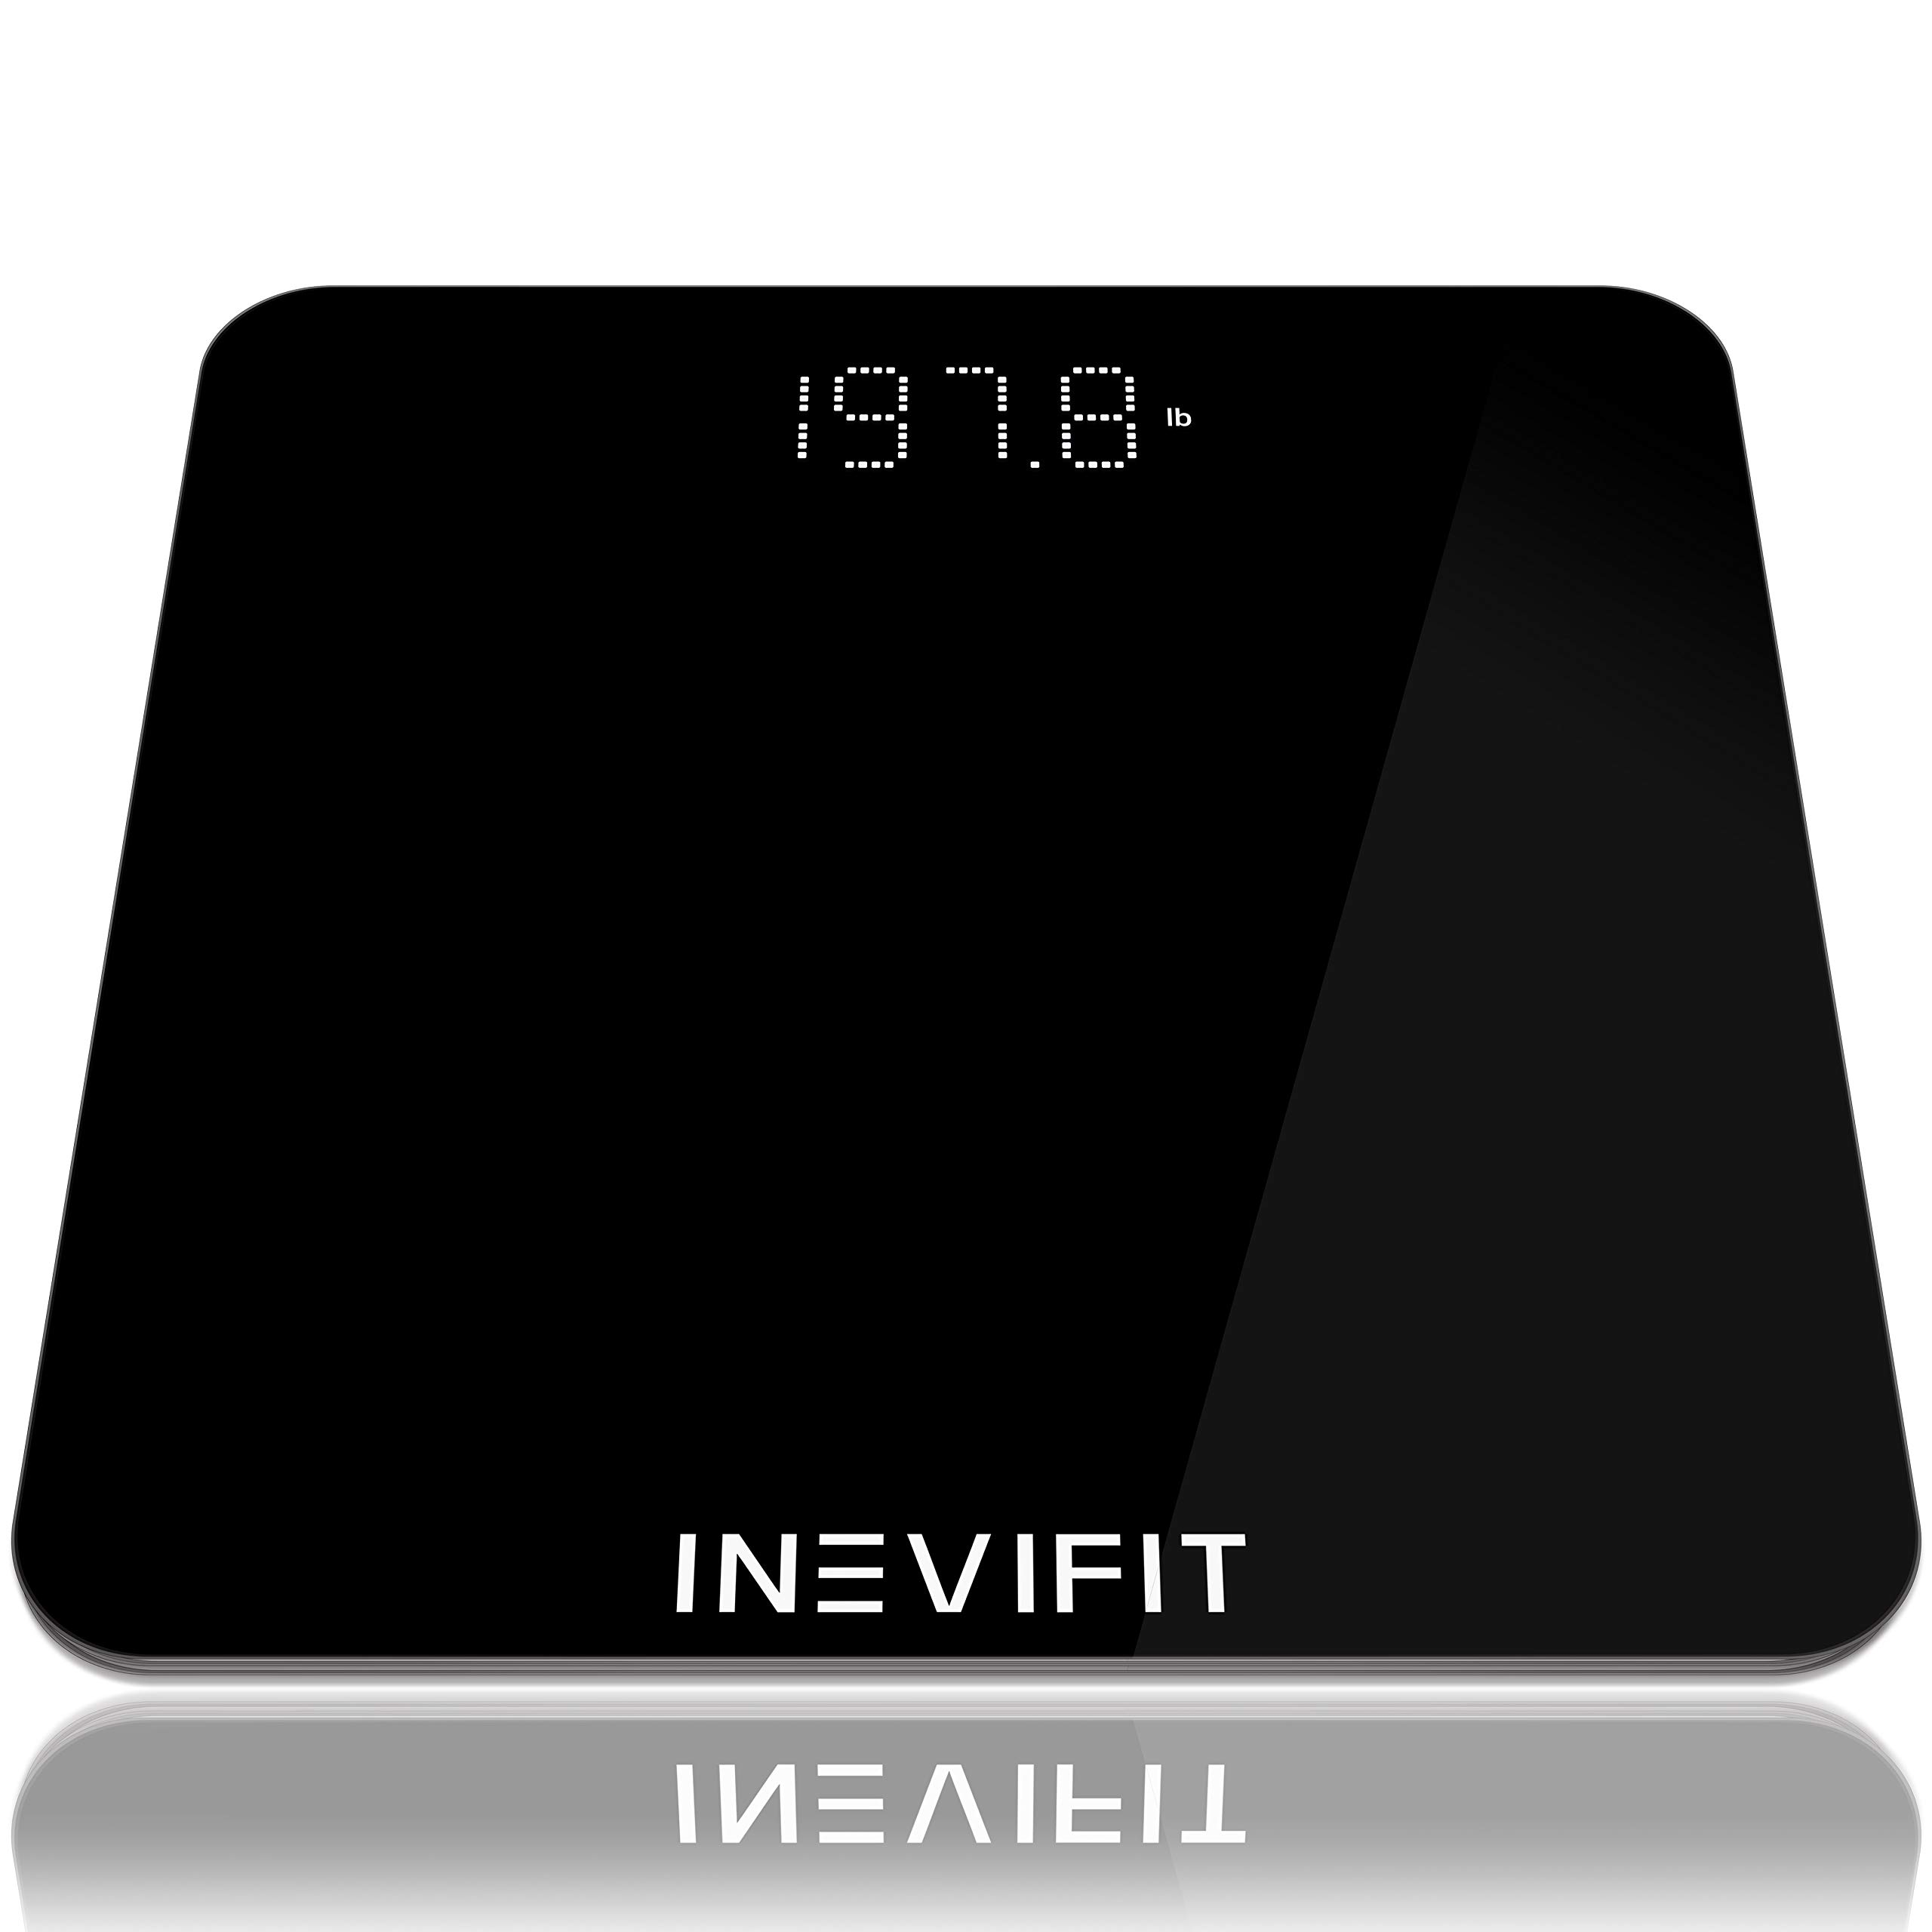 INEVIFIT Bathroom Scale, Highly Accurate Digital Bathroom Body Scale, Measures Weight for Multiple Users. by INEVIFIT